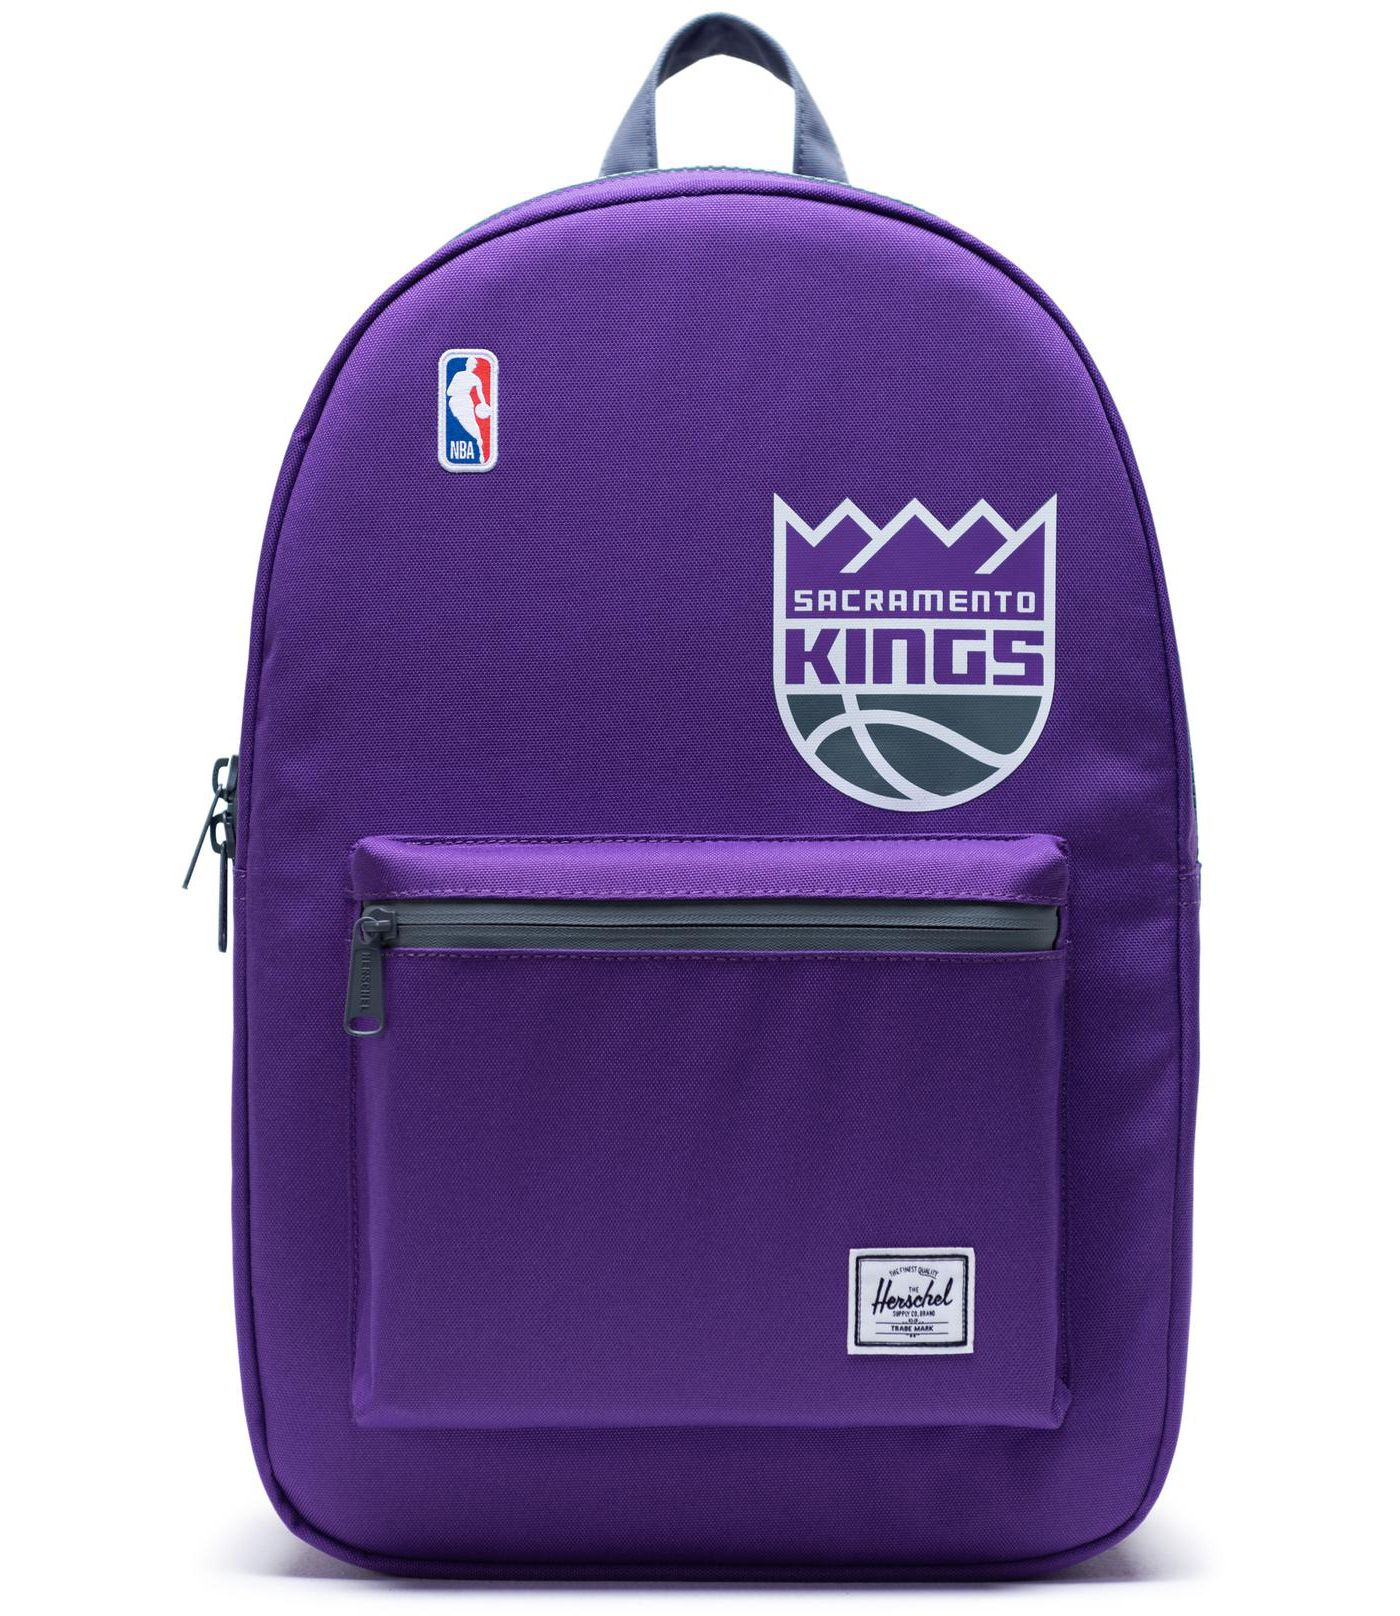 Herschel Sacramento Kings Purple Backpack